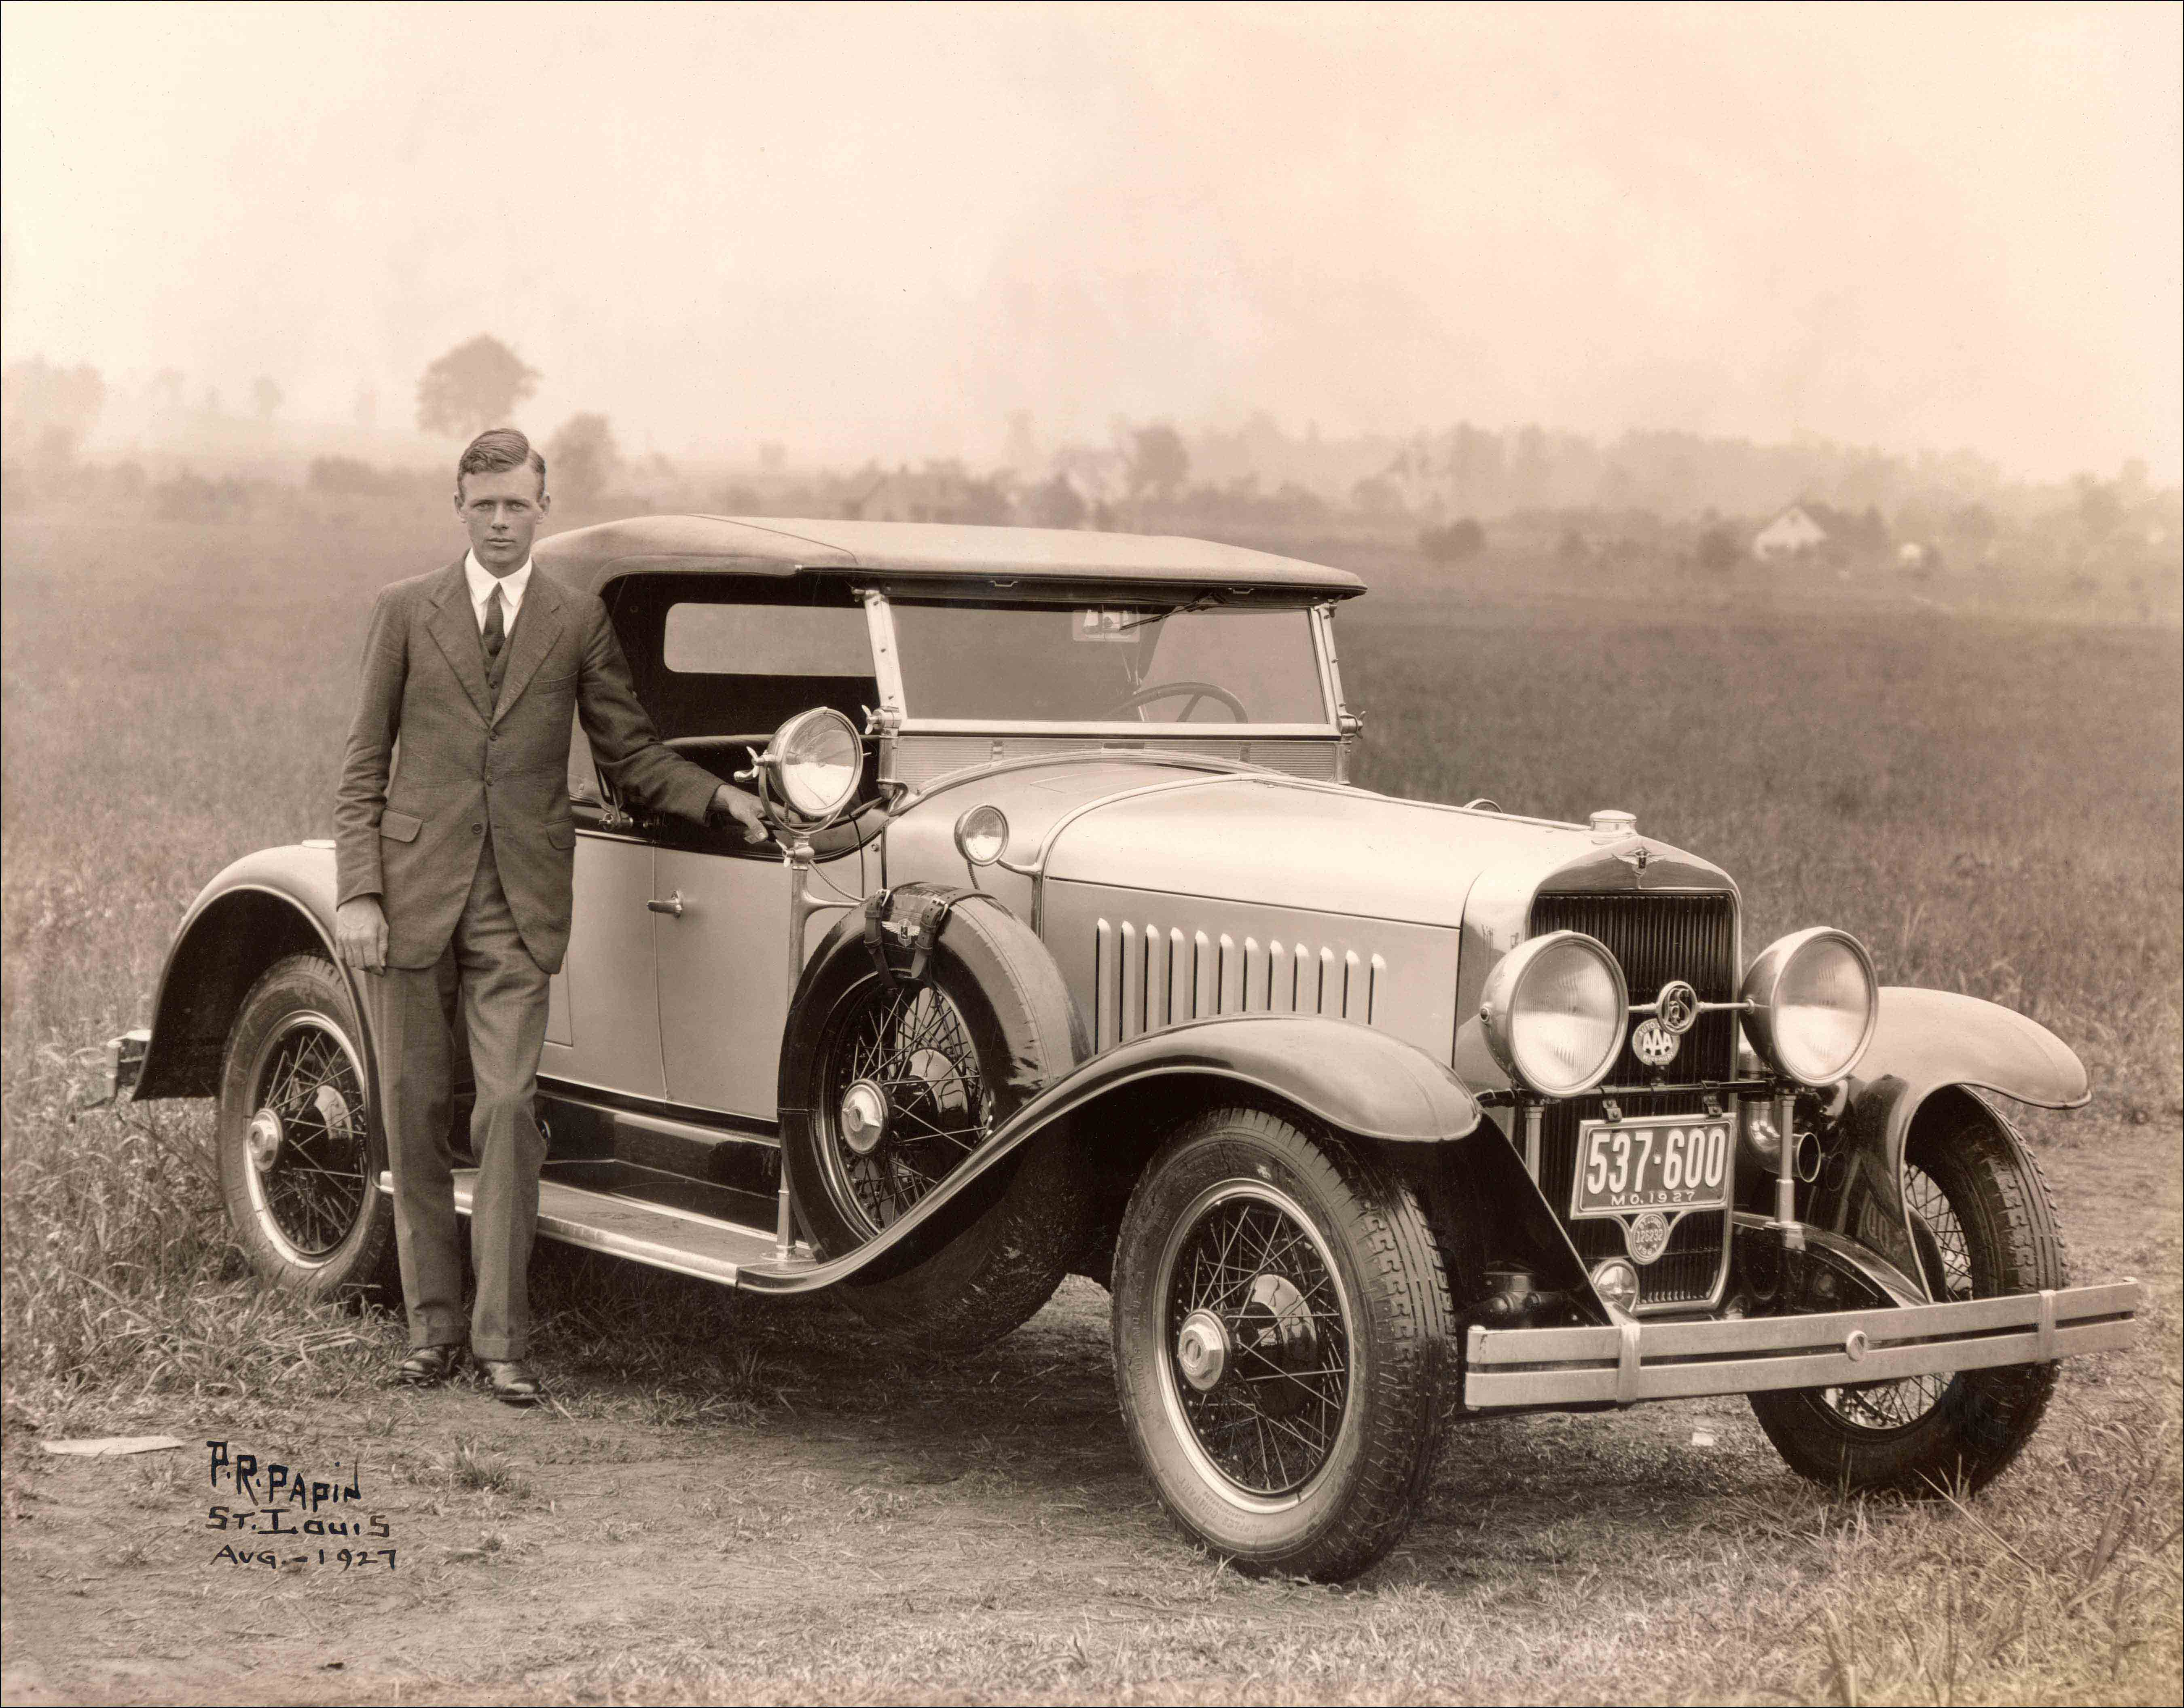 Charles Lindbergh poses next to a 1927 LaSalle roadster at Lambert Field, St. Louis, Missouri, on August 15, 1927.